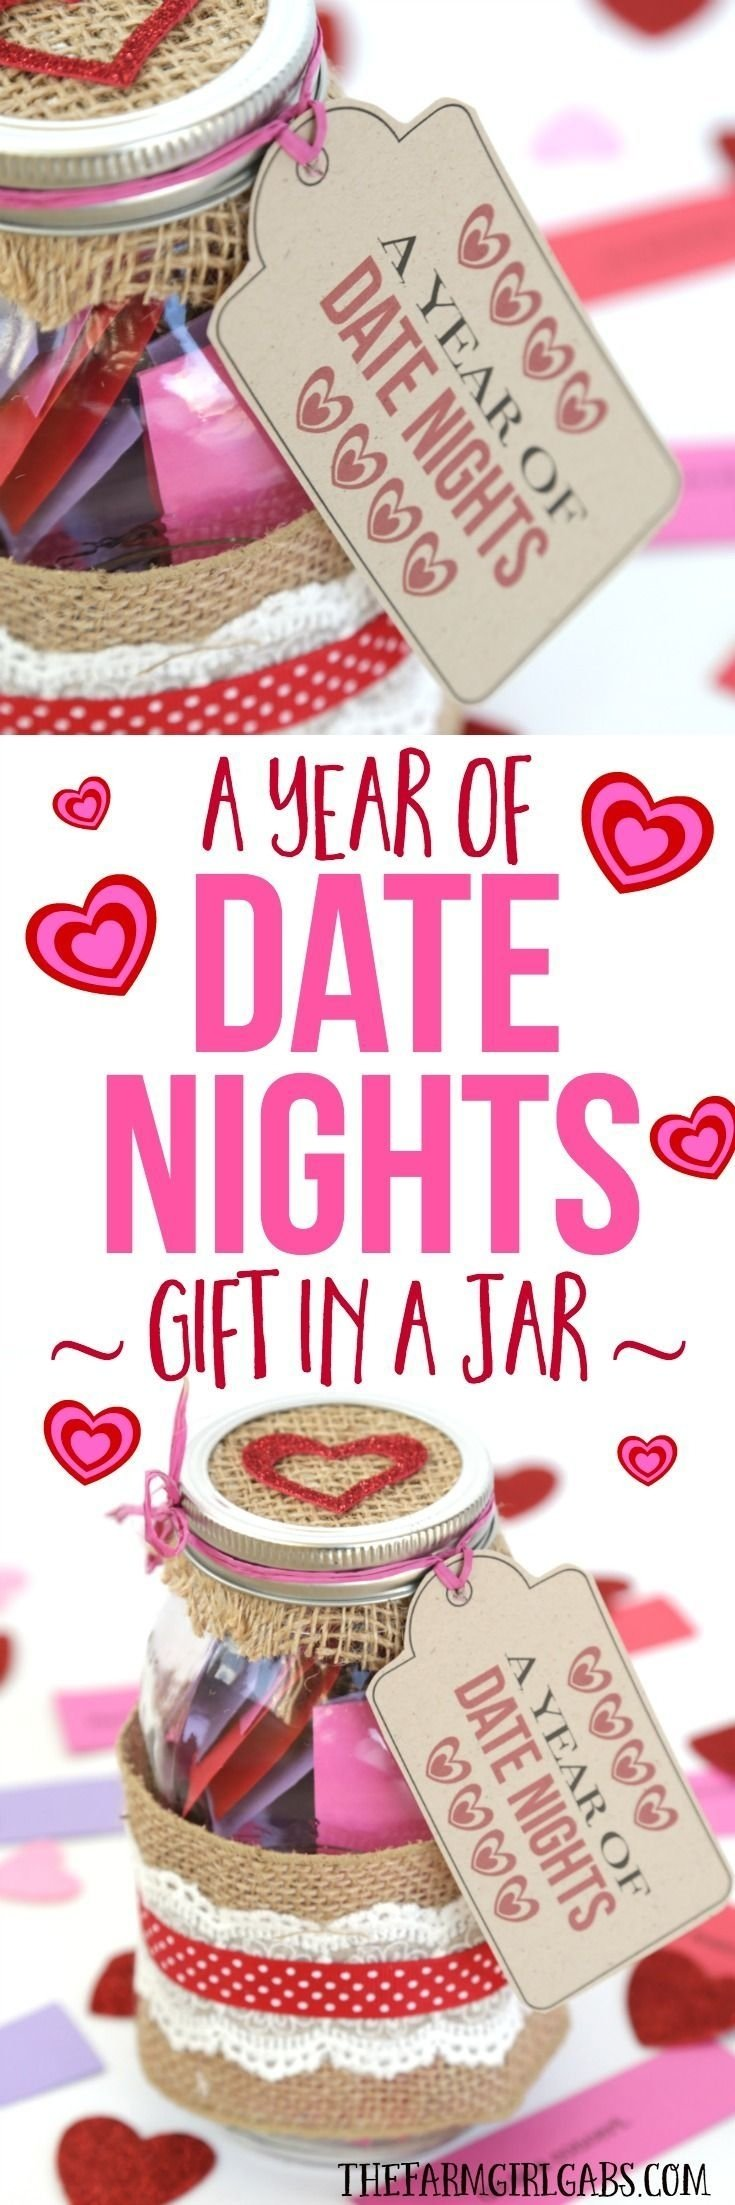 10 Fashionable Valentine Date Ideas For Him 334 best if i ever date etc images on pinterest relationships 2020